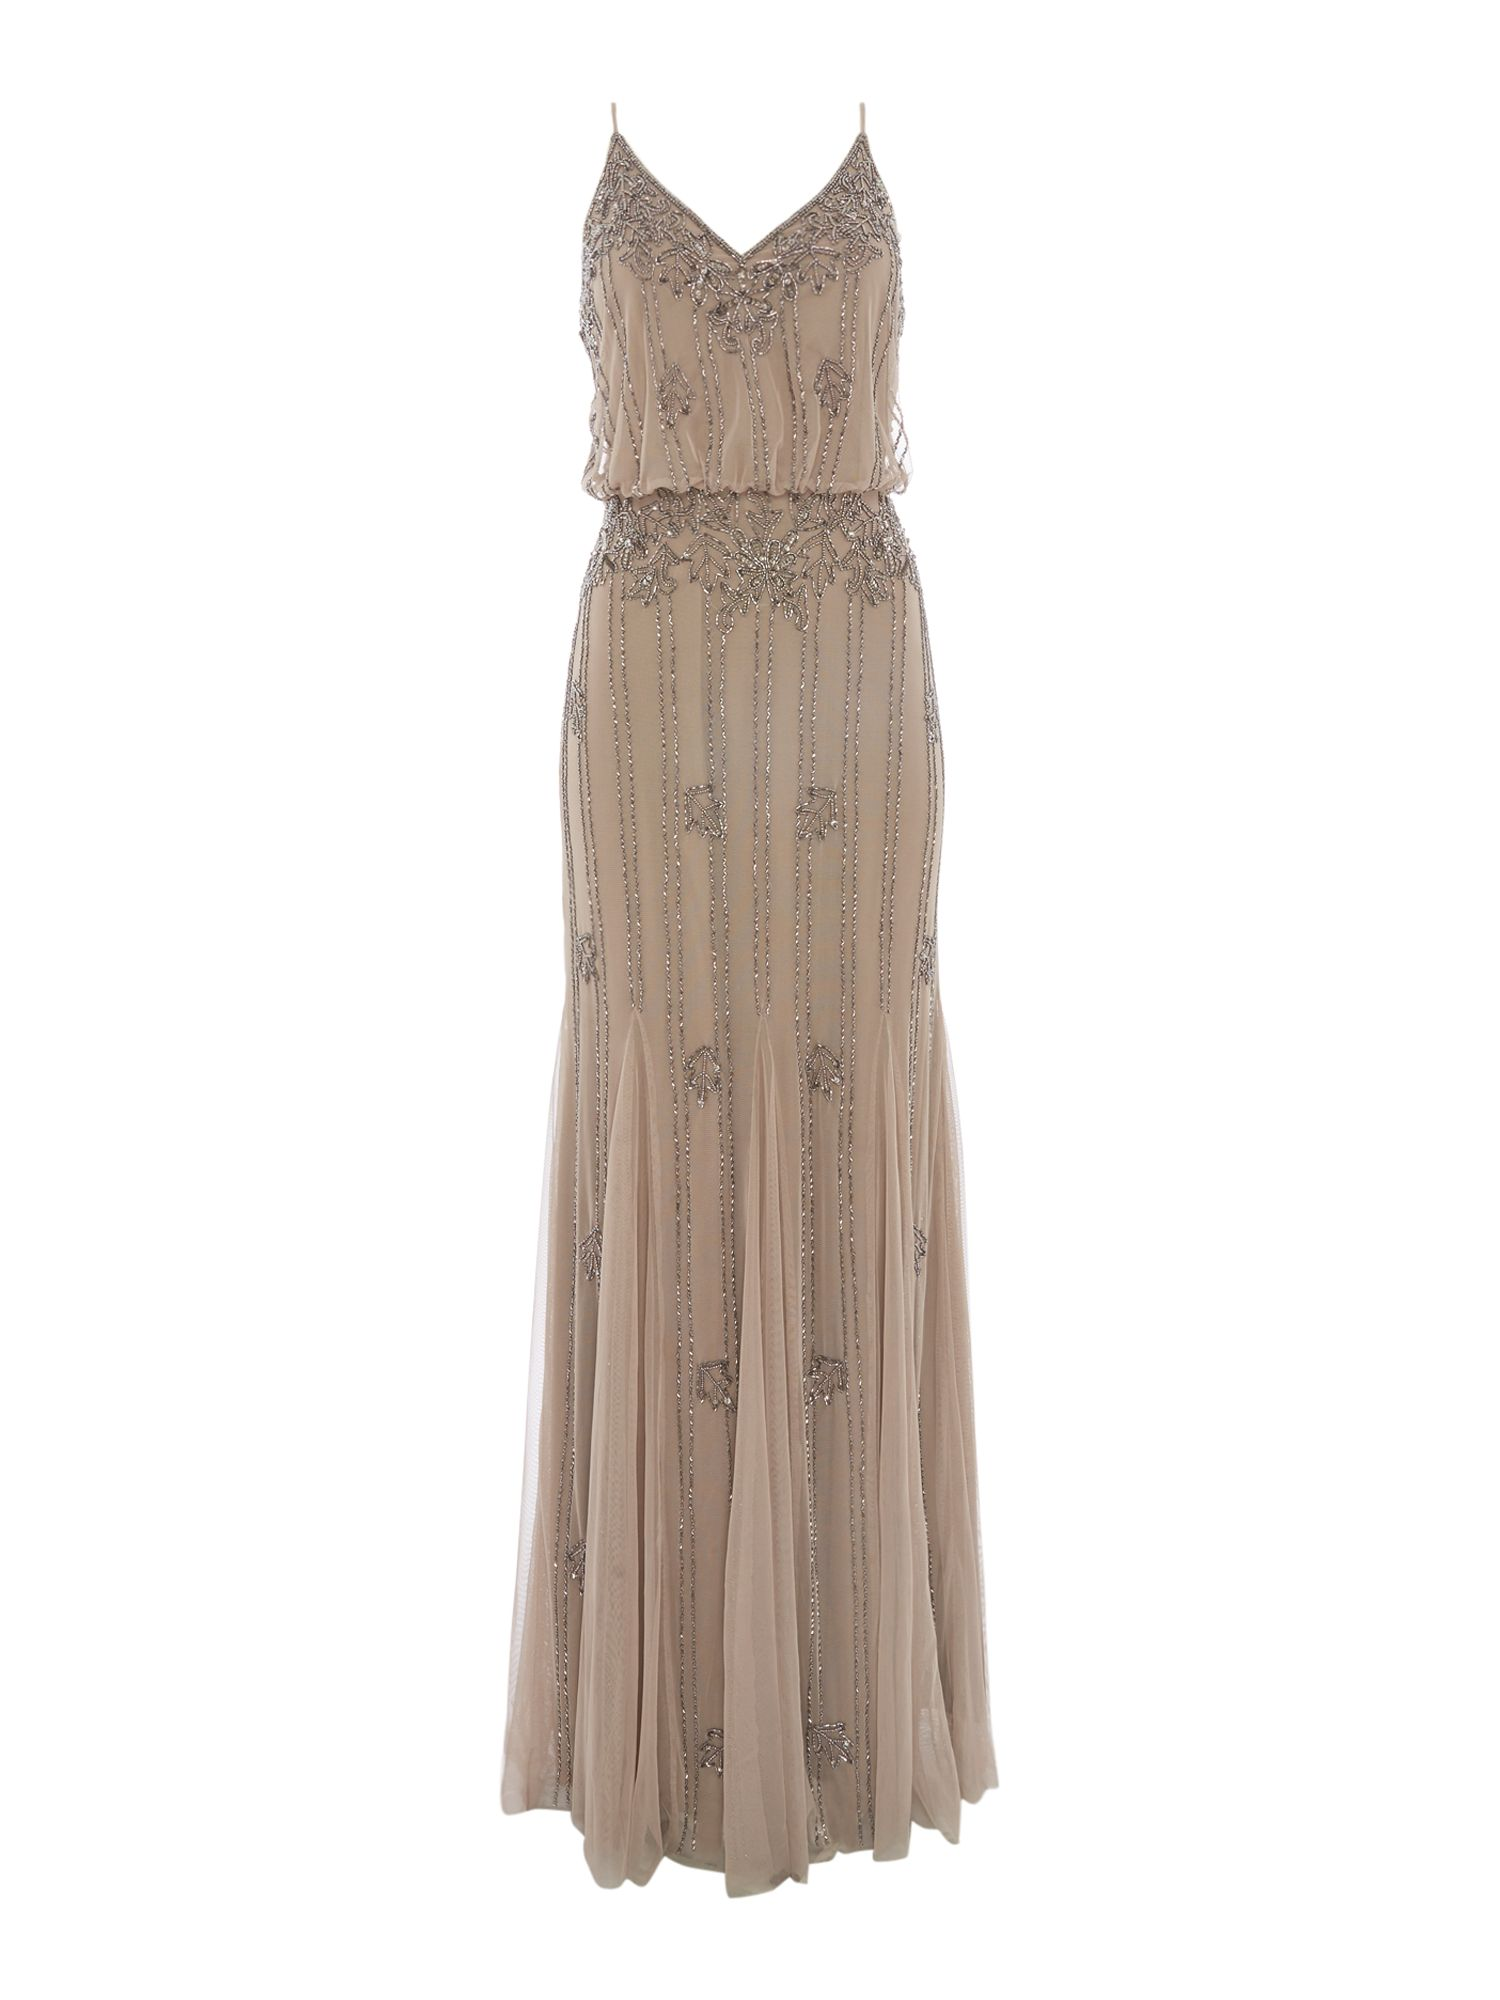 Lace and Beads Blouson Embellished Maxi Dress, Nude